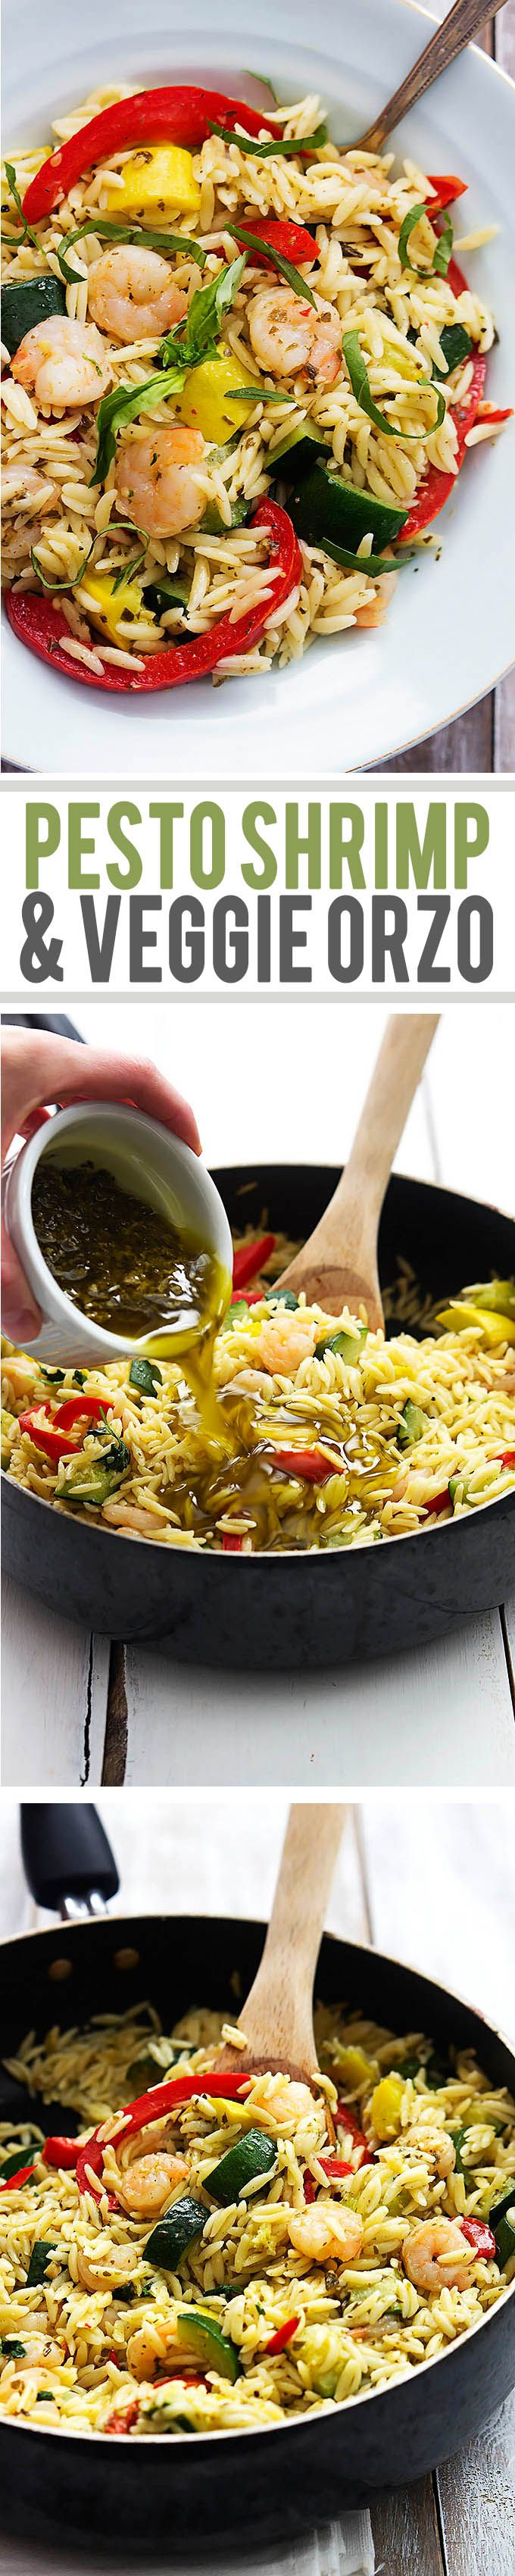 Light and flavorful shrimp and summer veggie orzo tossed with bright pesto vinaigrette.